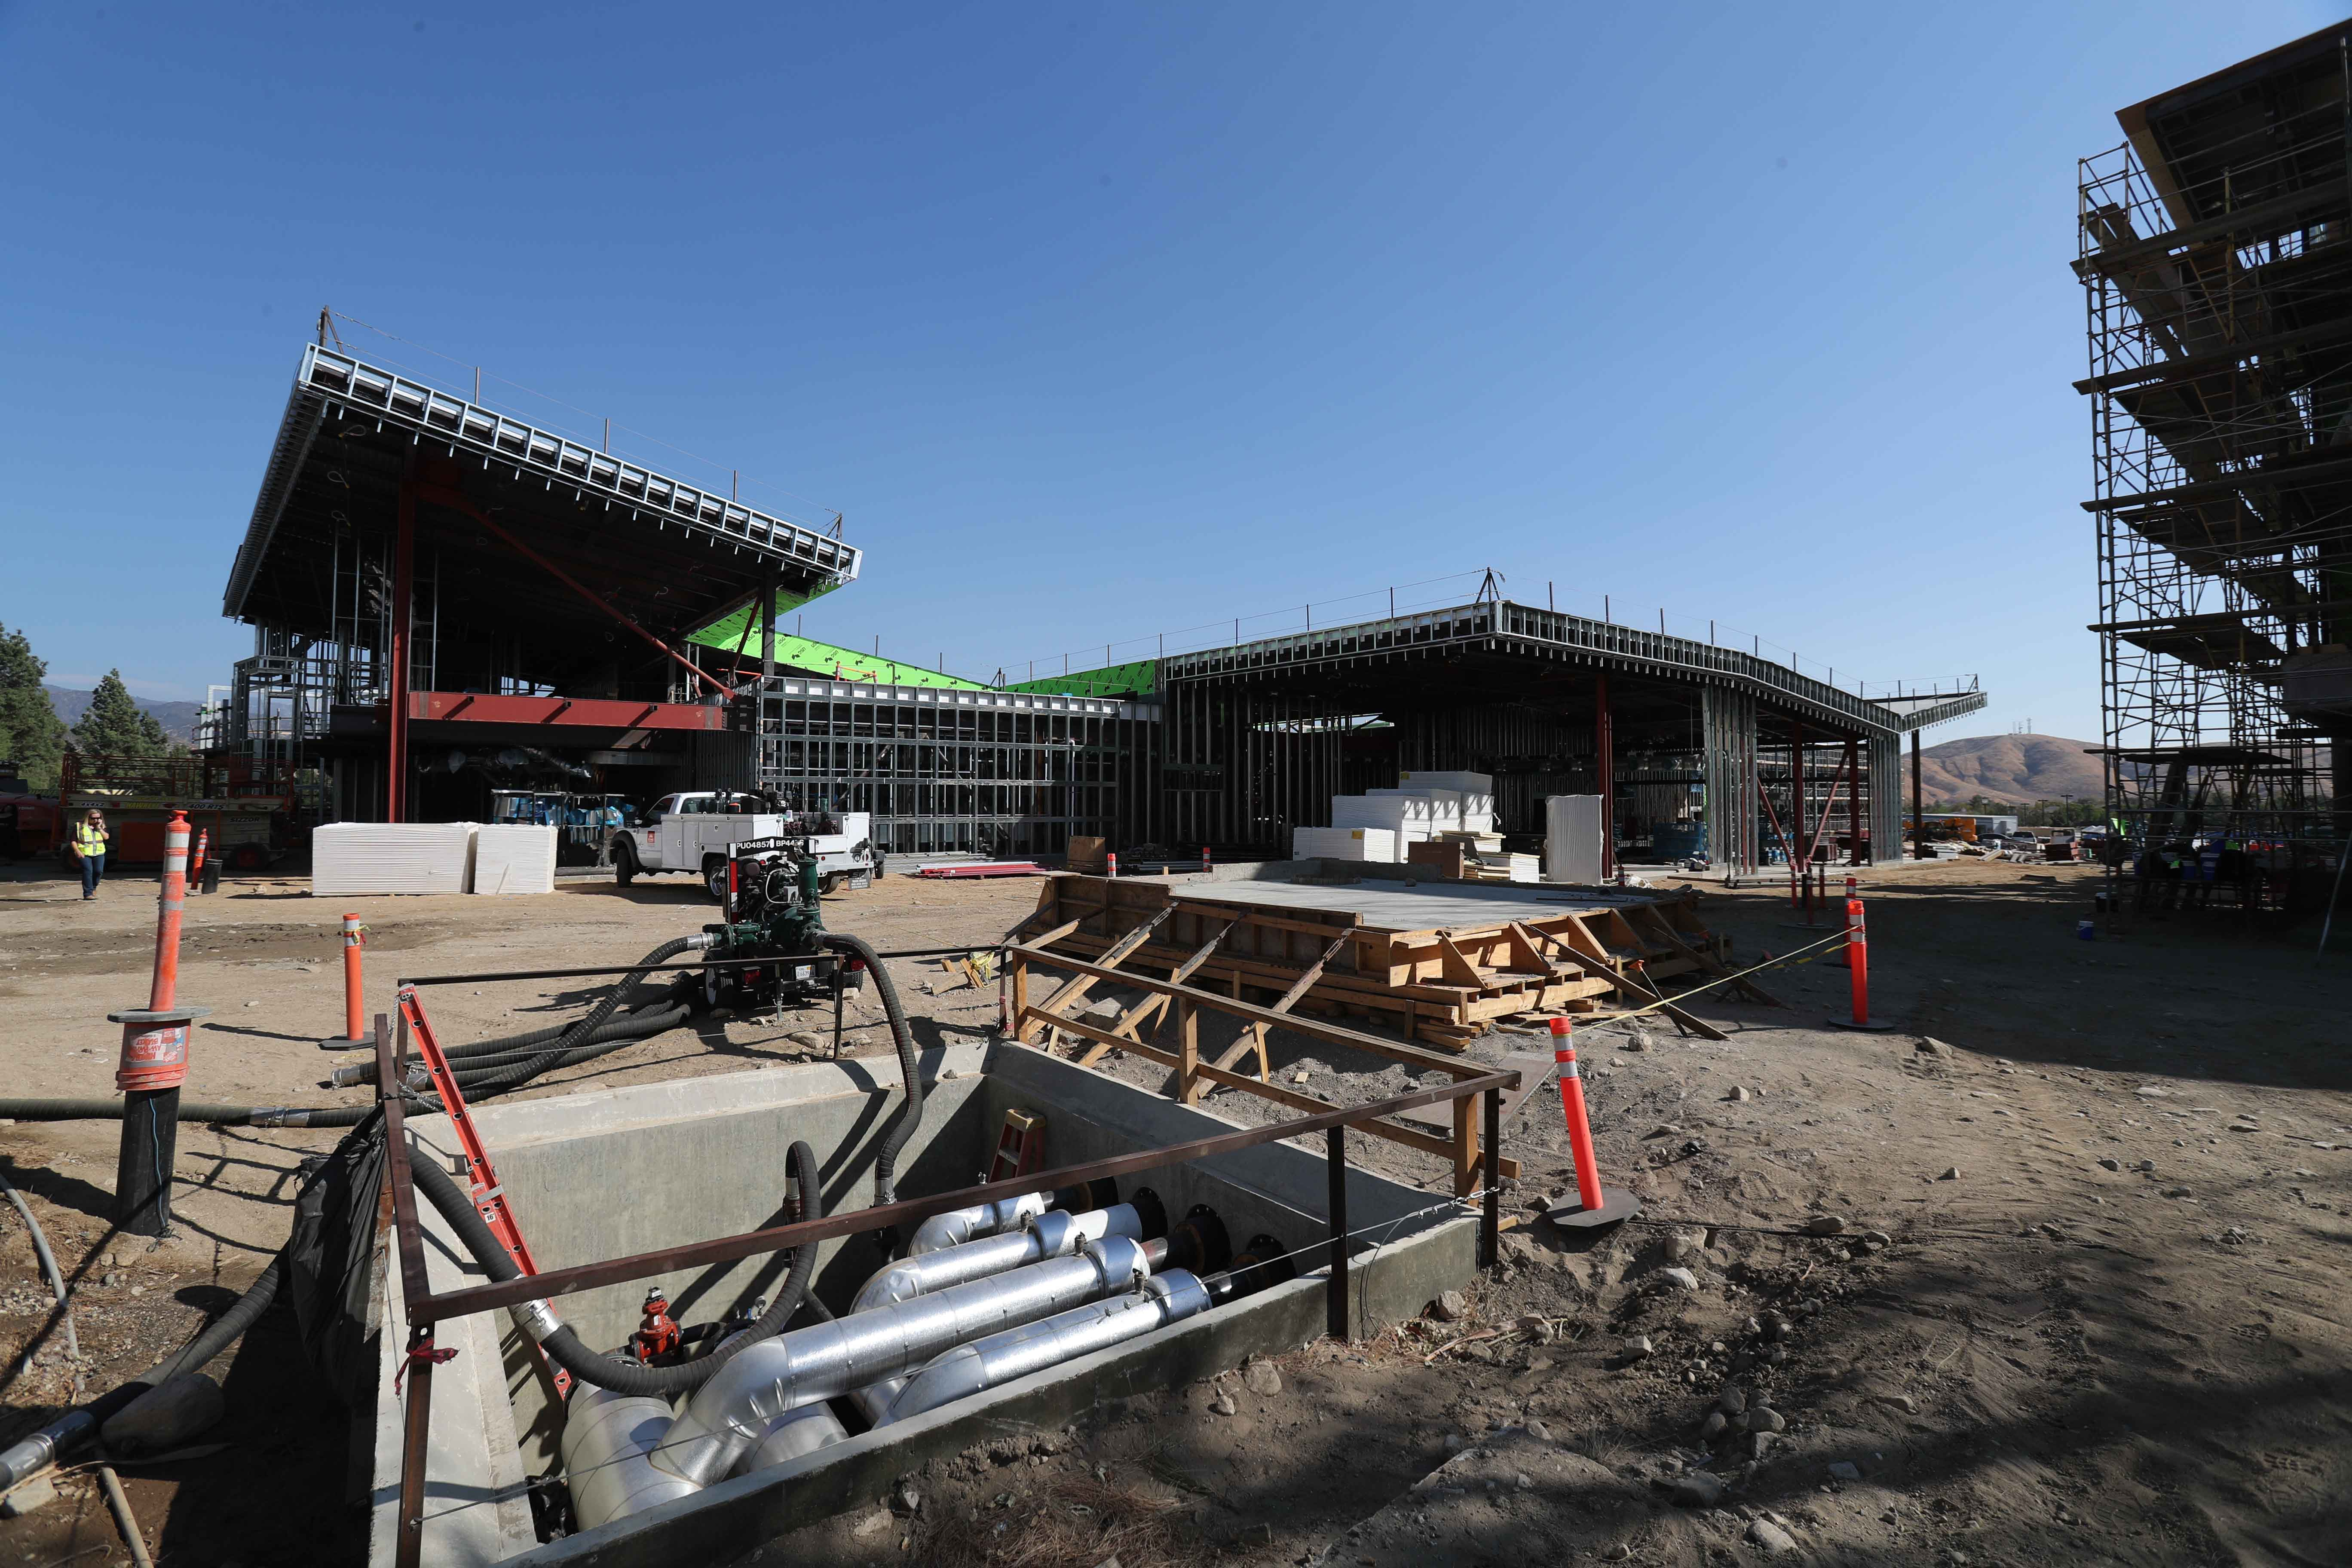 CSUSB staff photographer Robert A. Whitehead documented the topping-out ceremony at the work site, near the Jack H. Brown College of Business and Public Administration